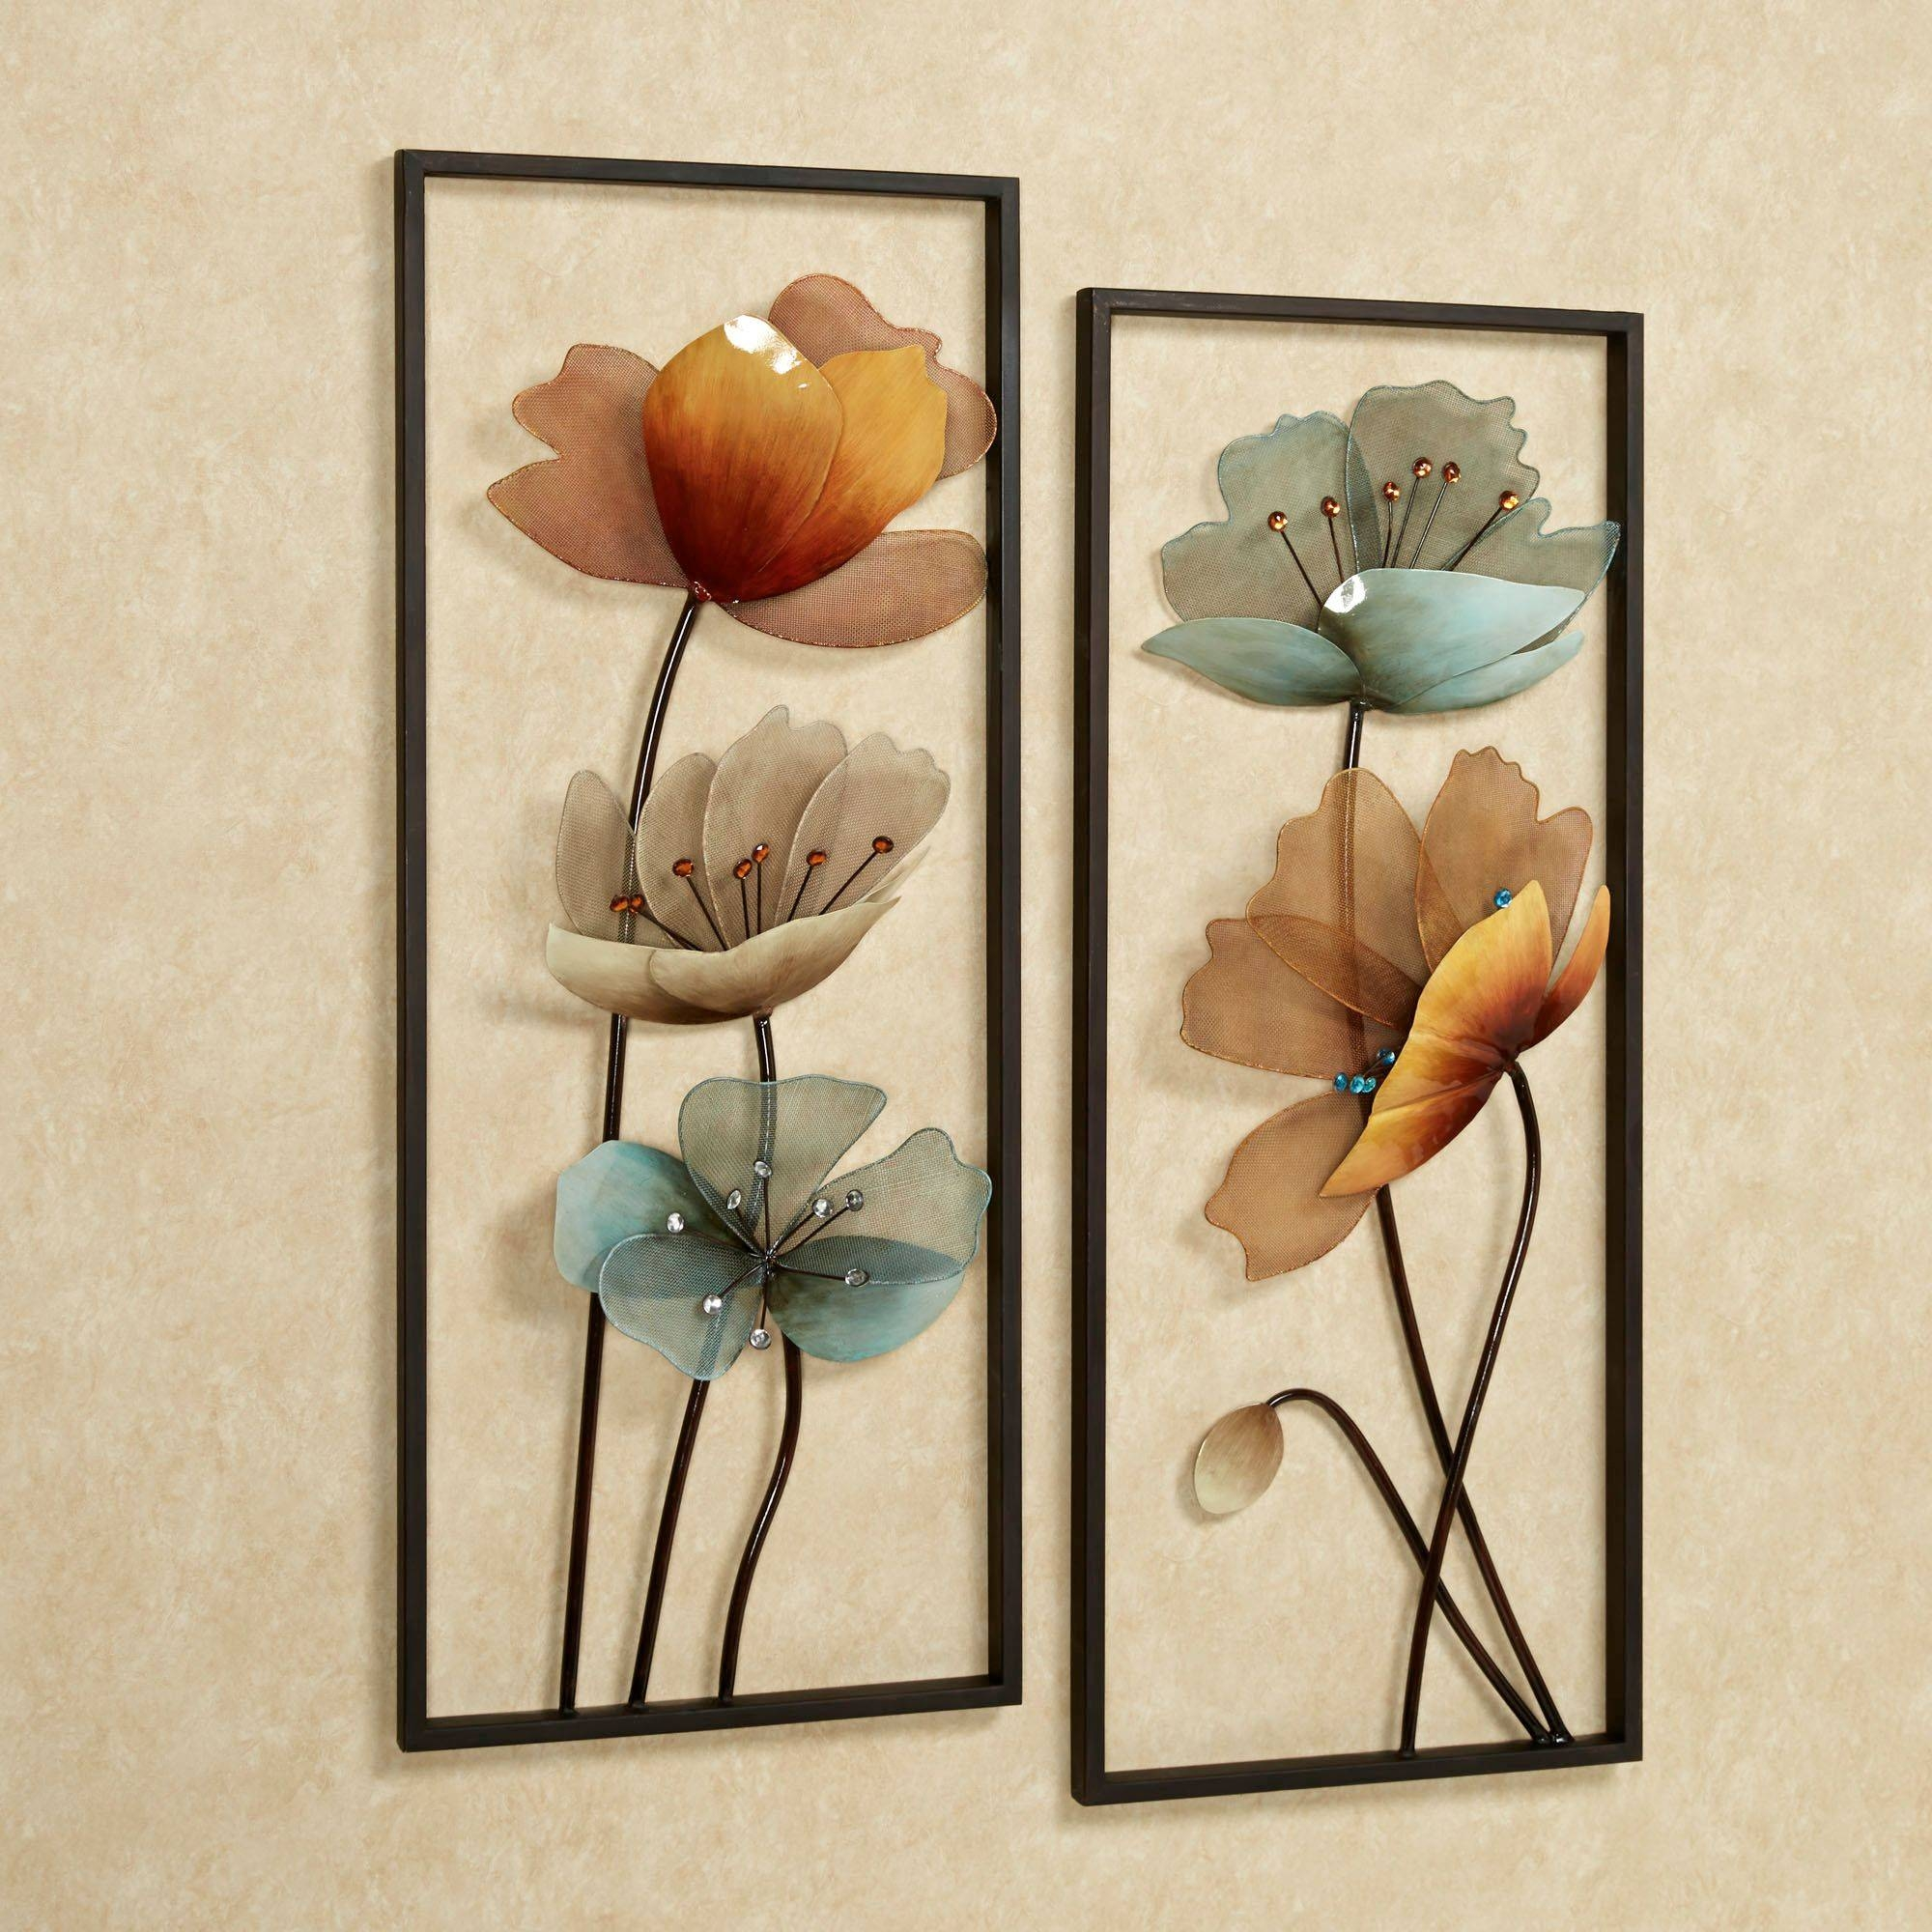 Beauty Decorative Metal Wall Art : Unique Material Decorative With Newest Flower Metal Wall Art Decor (View 4 of 20)